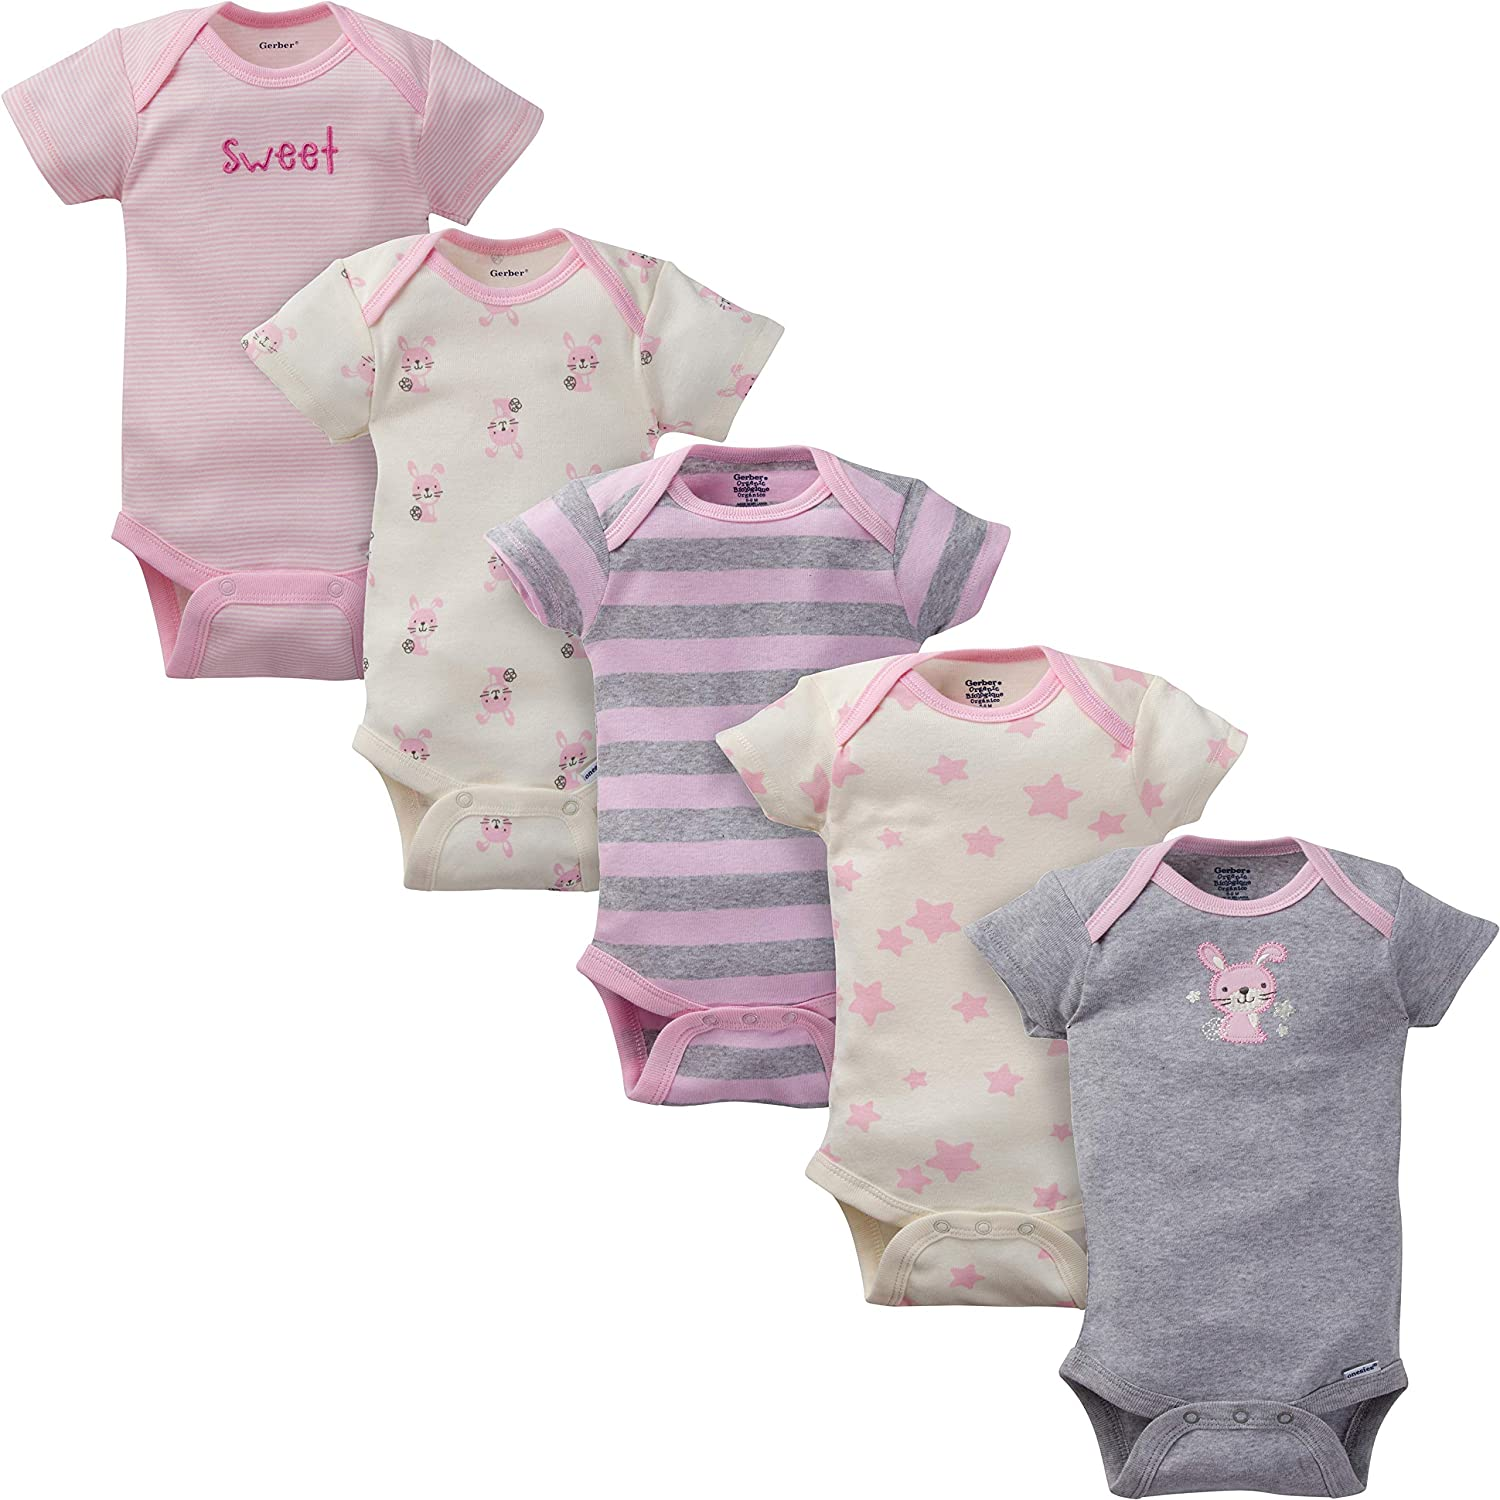 Gerber Baby Girls 5-Pack Organic Short Sleeve Onesies Bodysuits